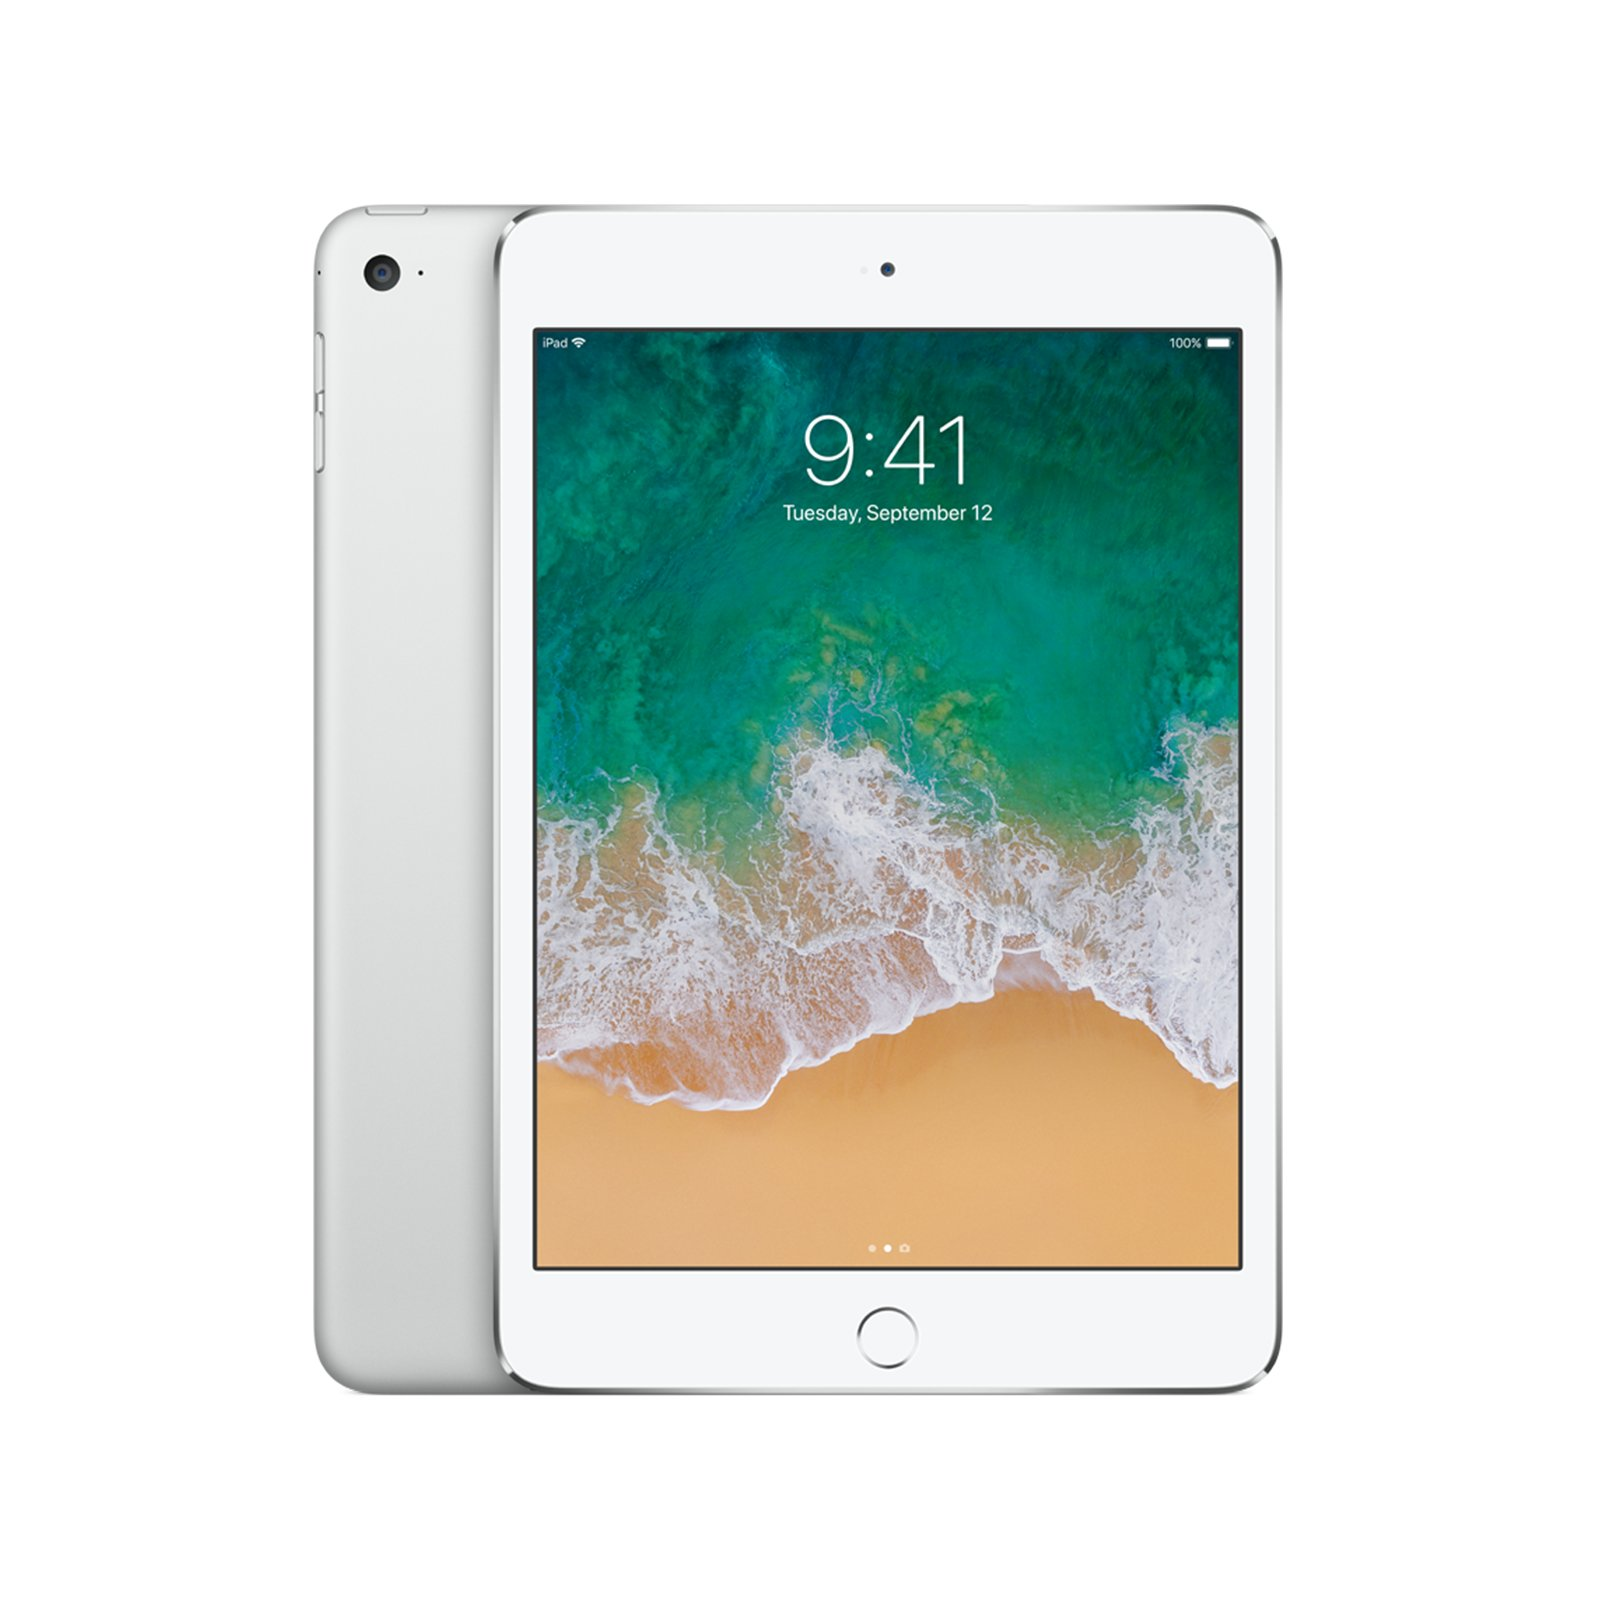 Apple iPad Mini 4 WiFi (128GB), Sidabrinė, MK9P2HC/A